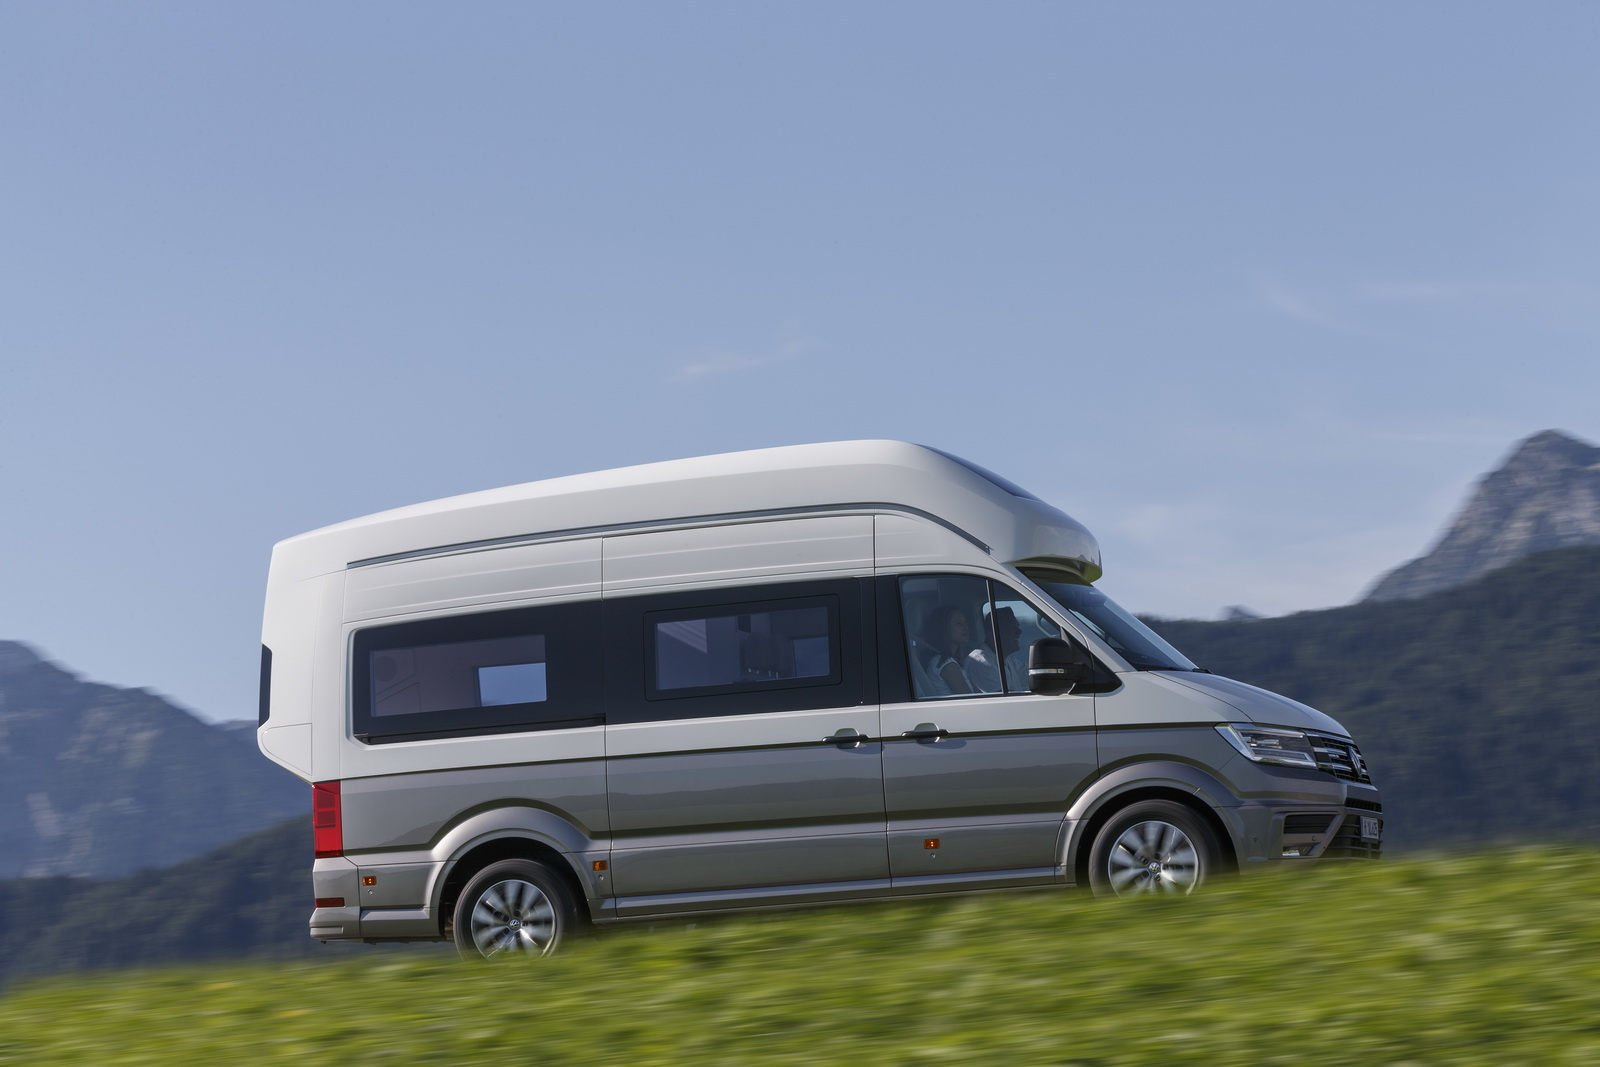 Vw California Xxl Concept Is Big Camper Van For Globetrotters 41 Pics Carscoops